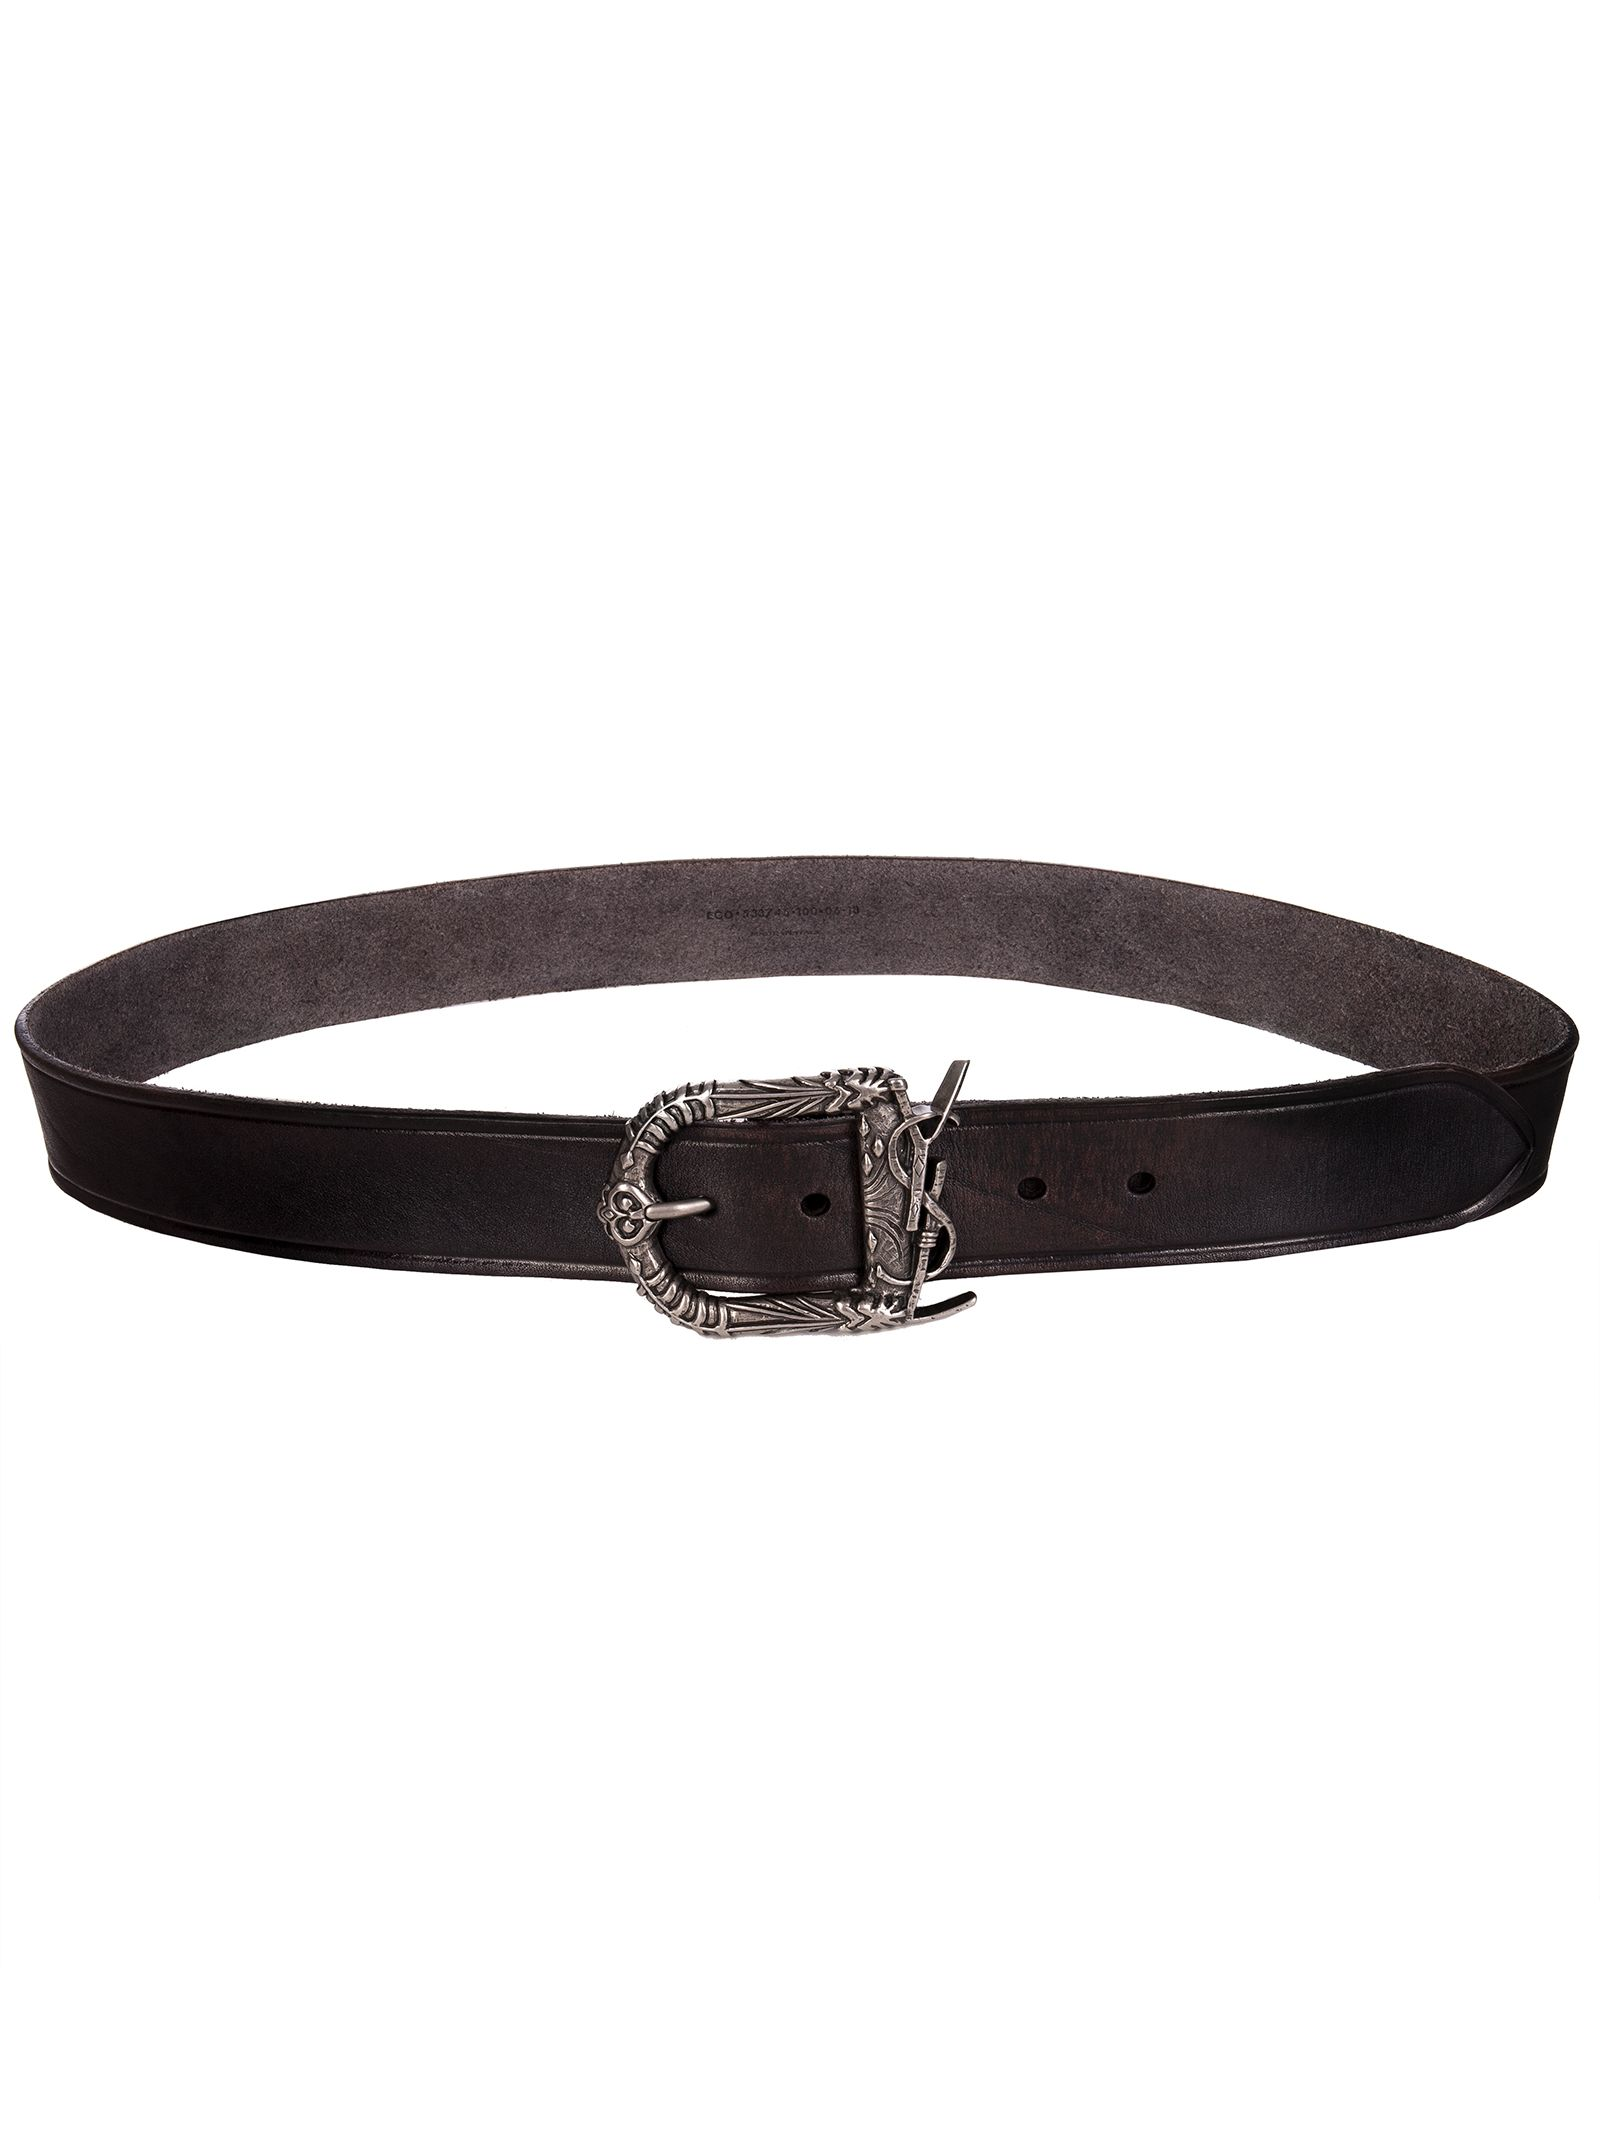 Saint Laurent Monogram Celtic Belt